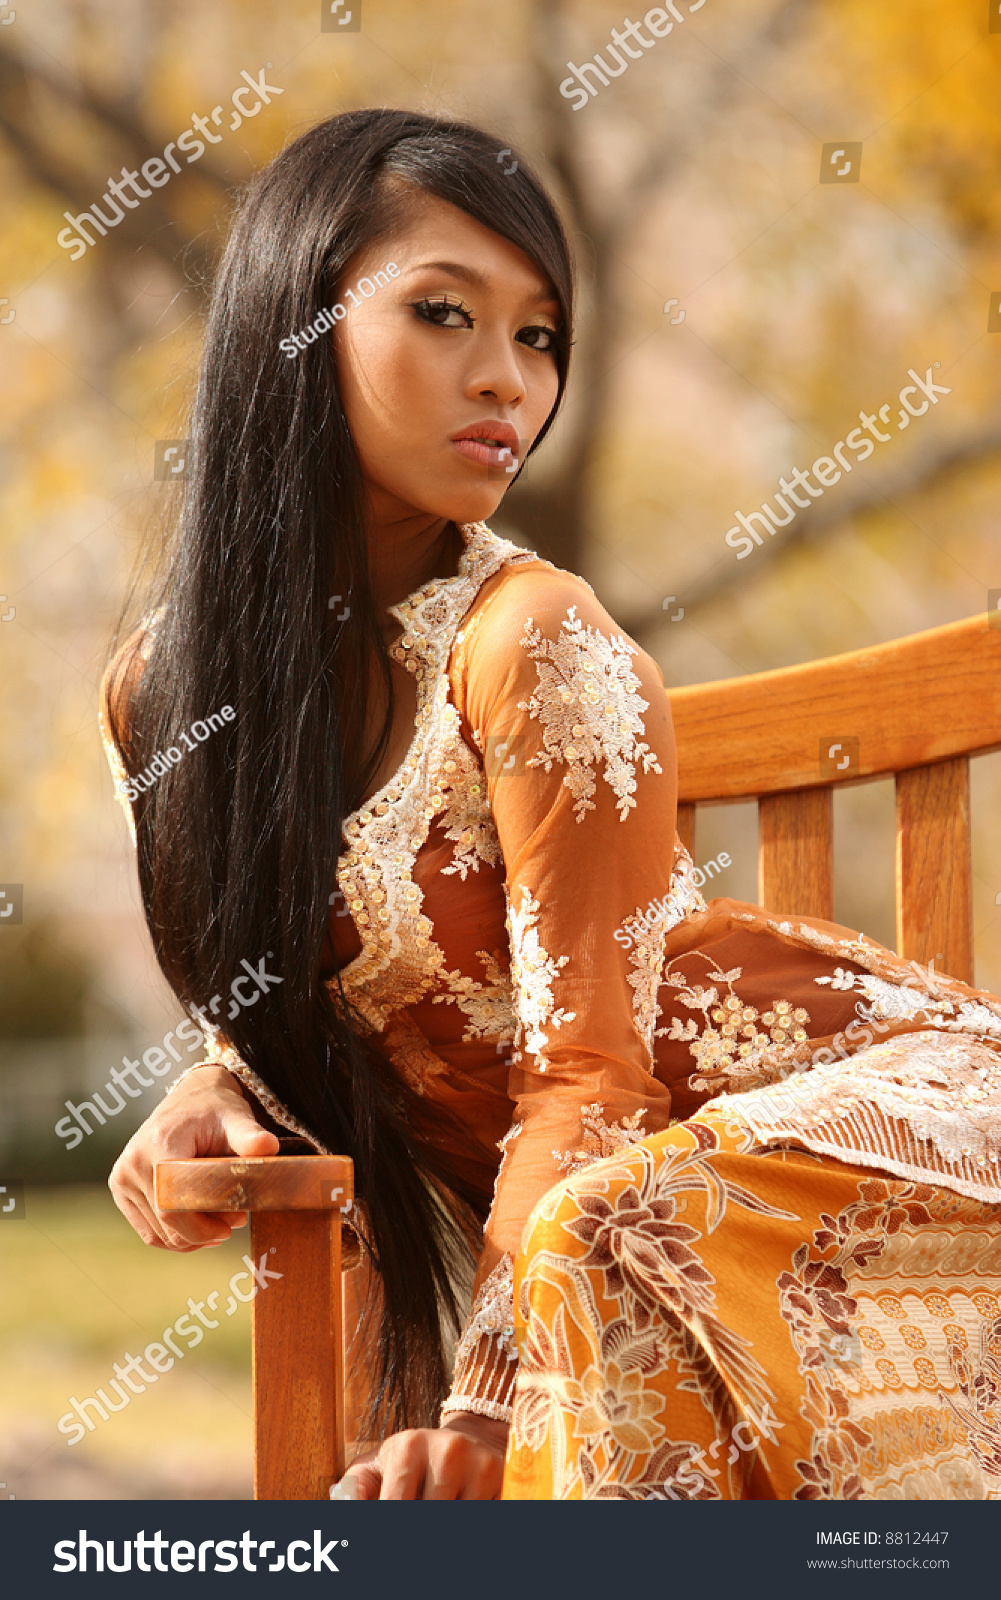 indonesian chinese girl dating What are the pros and cons of dating a chinese girl what are the pros and cons of dating a girl who remember that if you're dating a chinese girl in a non.